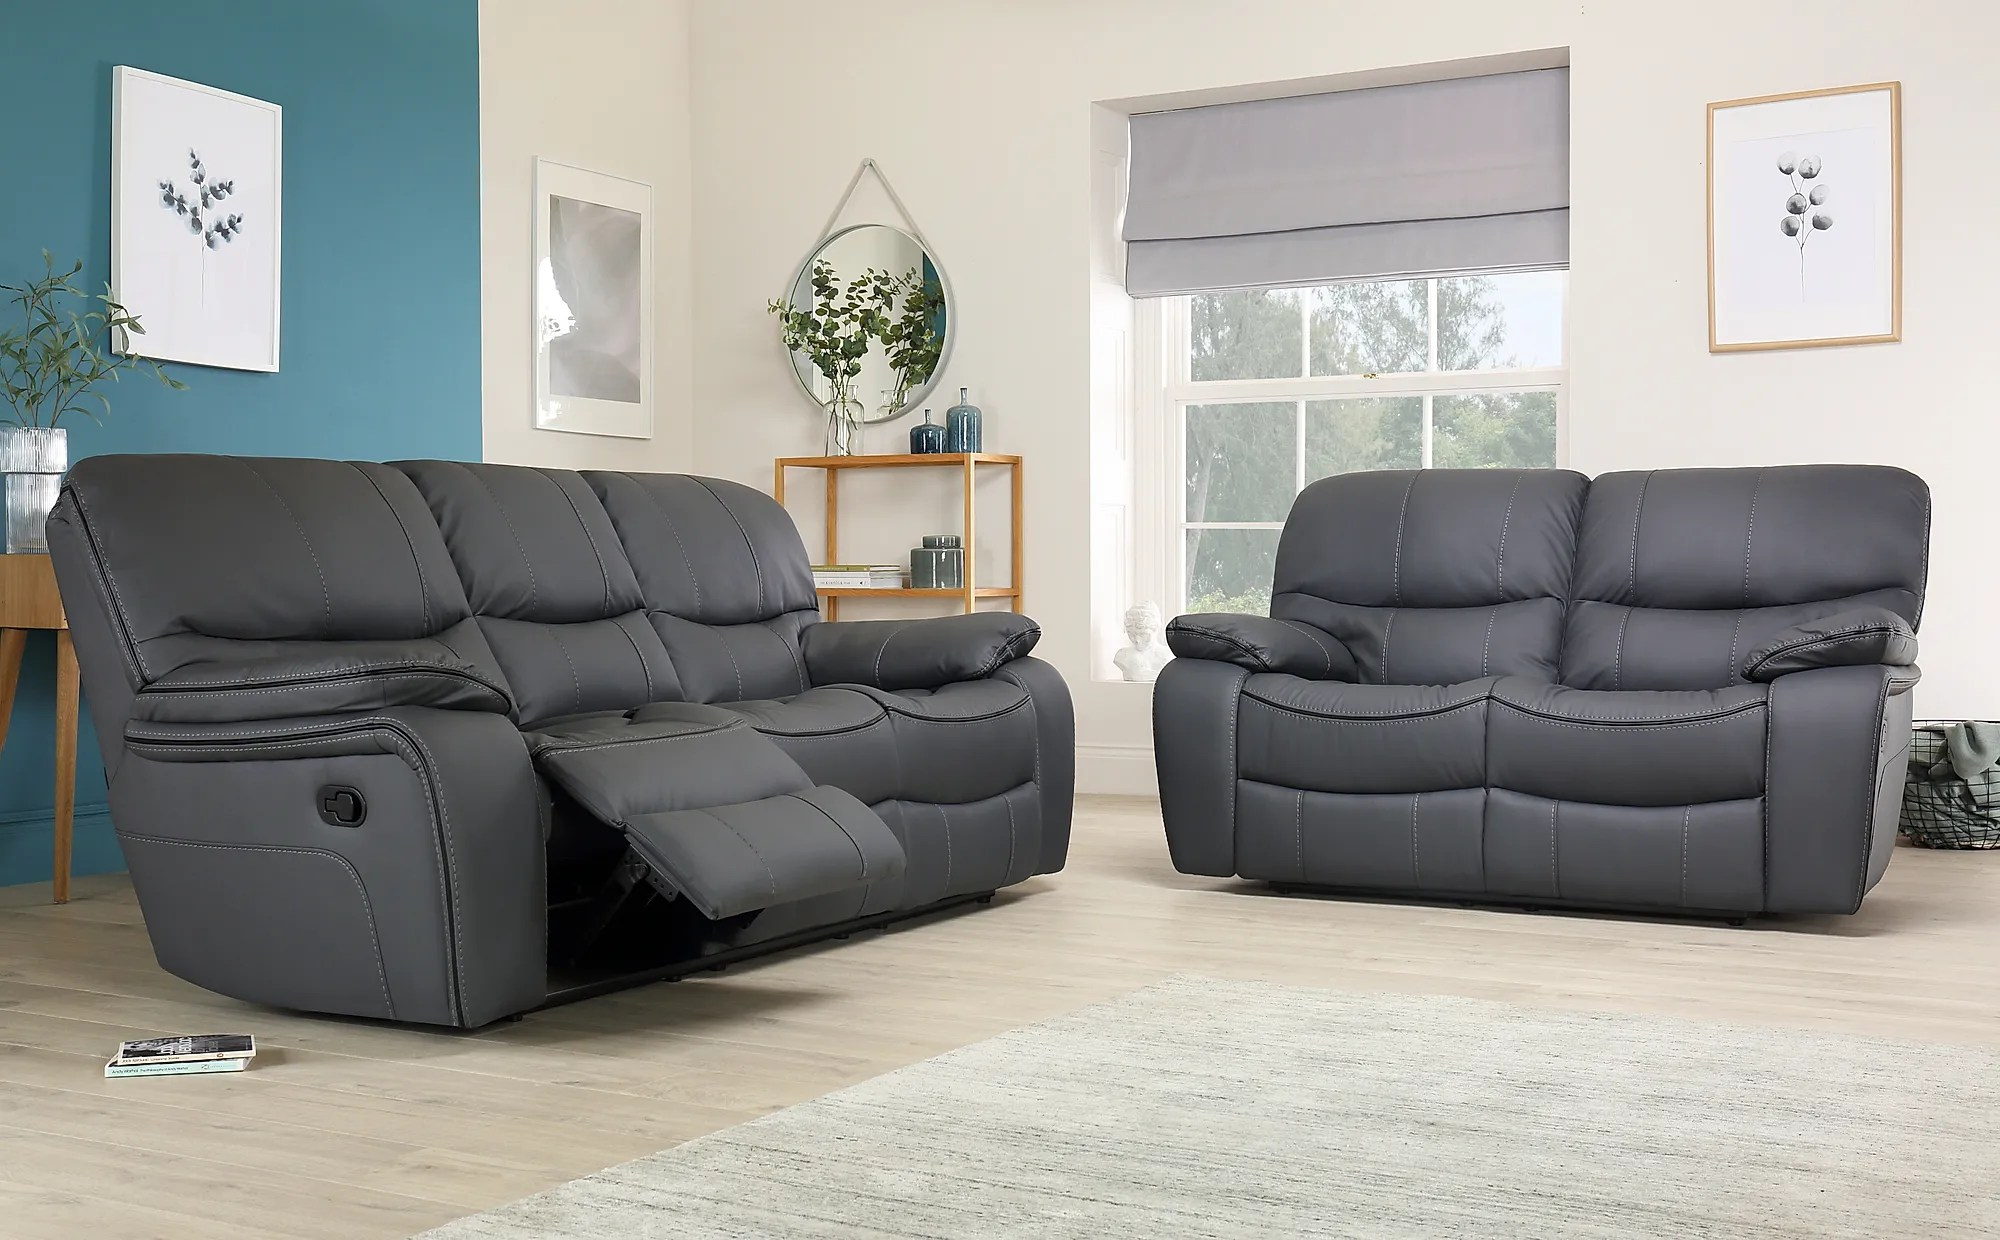 Beaumont Grey Leather Recliner Sofa 3 2 Seater Only 1099